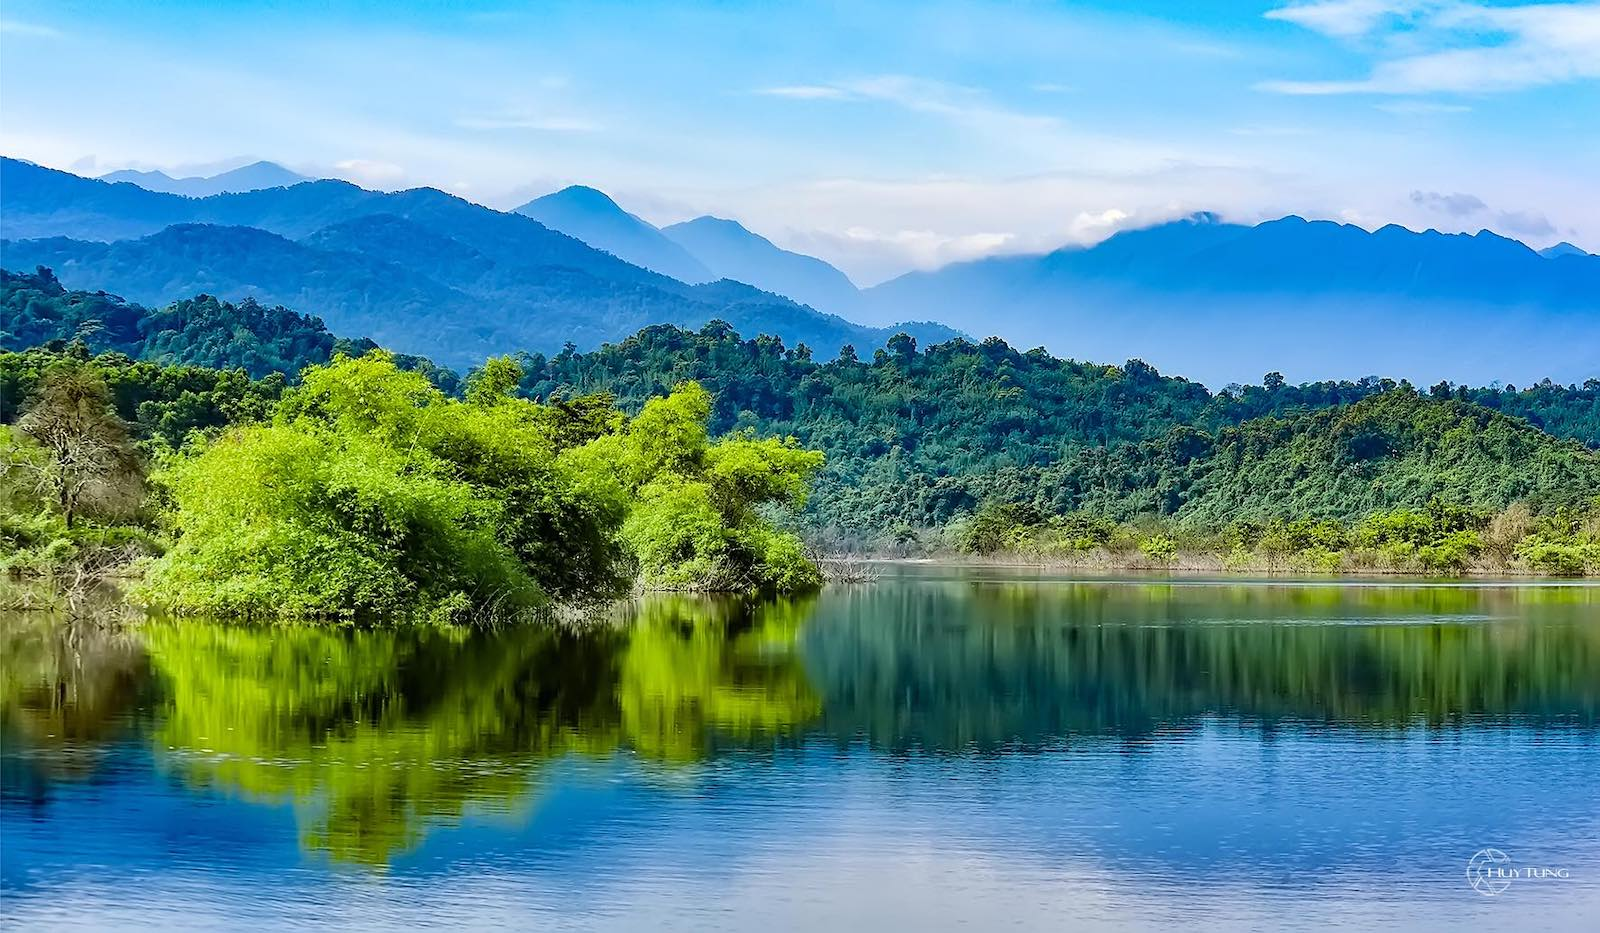 Image of a lake and mountains in Vu Quang National Park